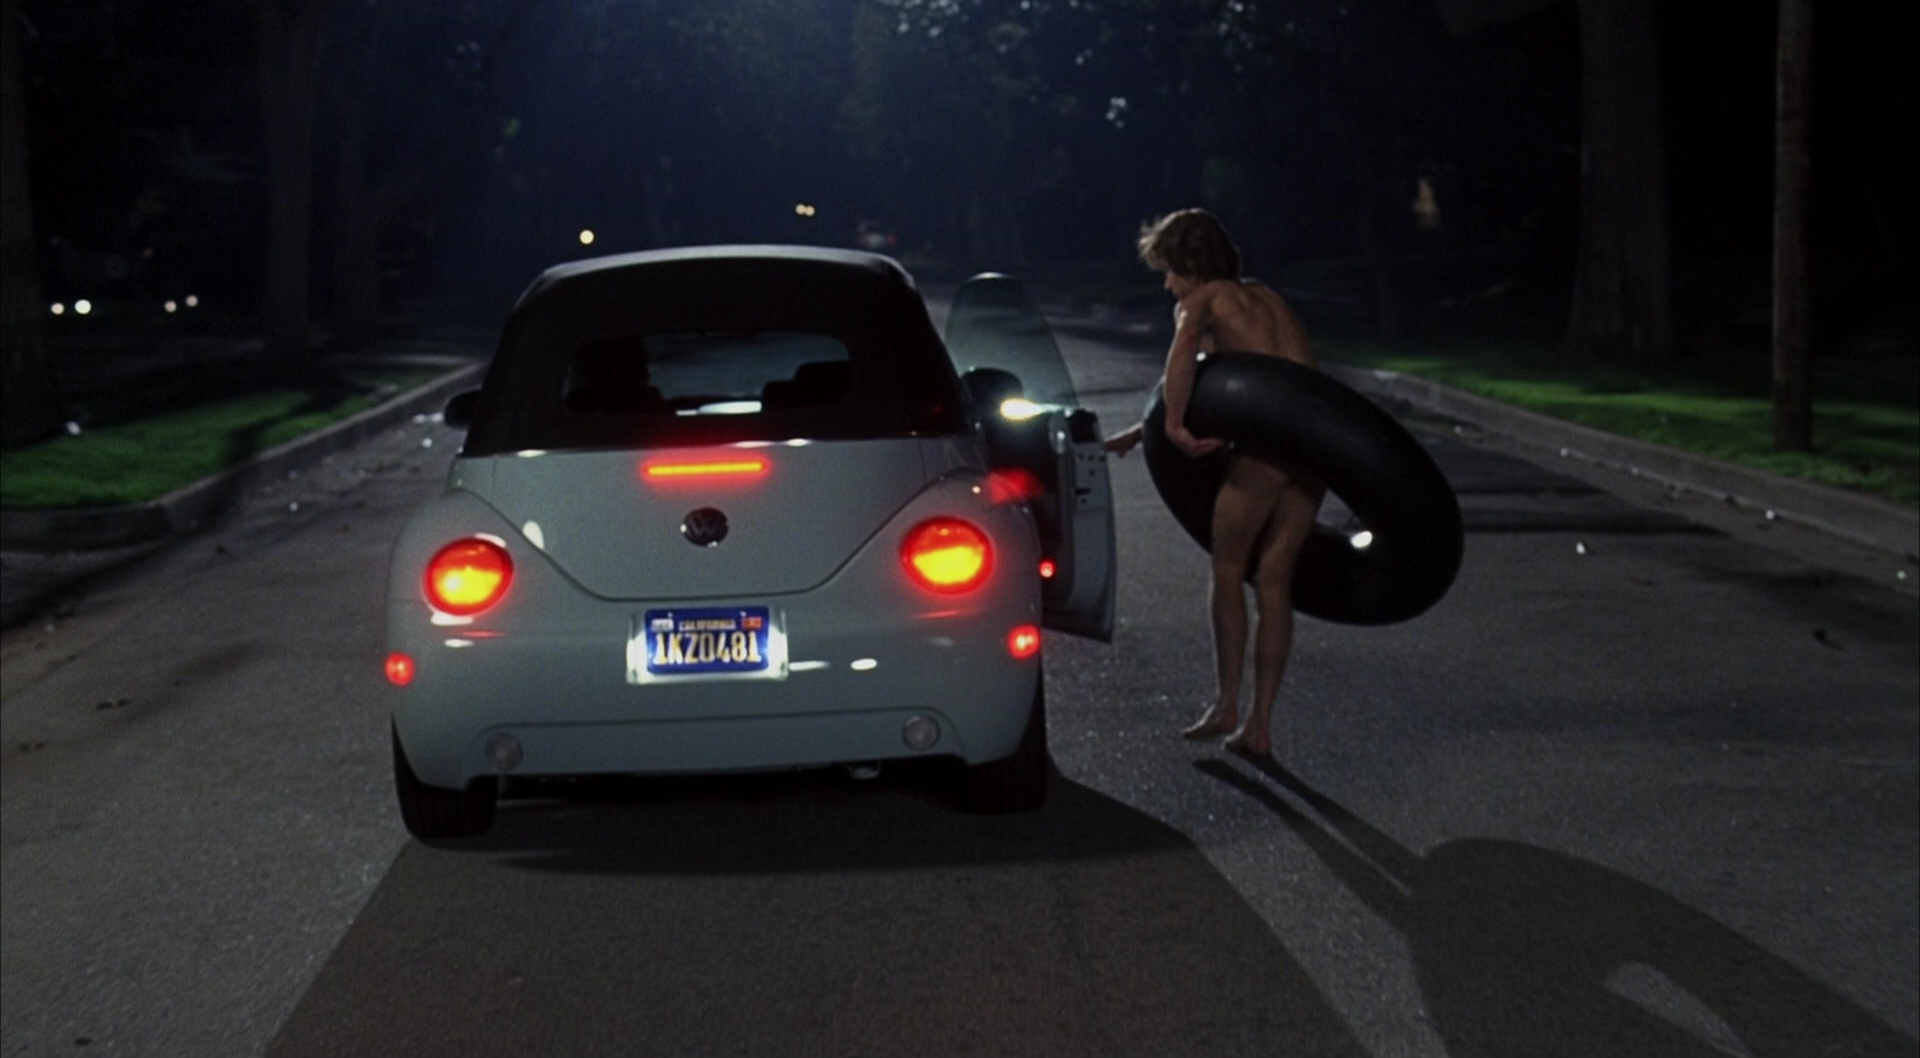 Volkswagen Beetle Cabriolet Car - The Girl Next Door (2004) Movie